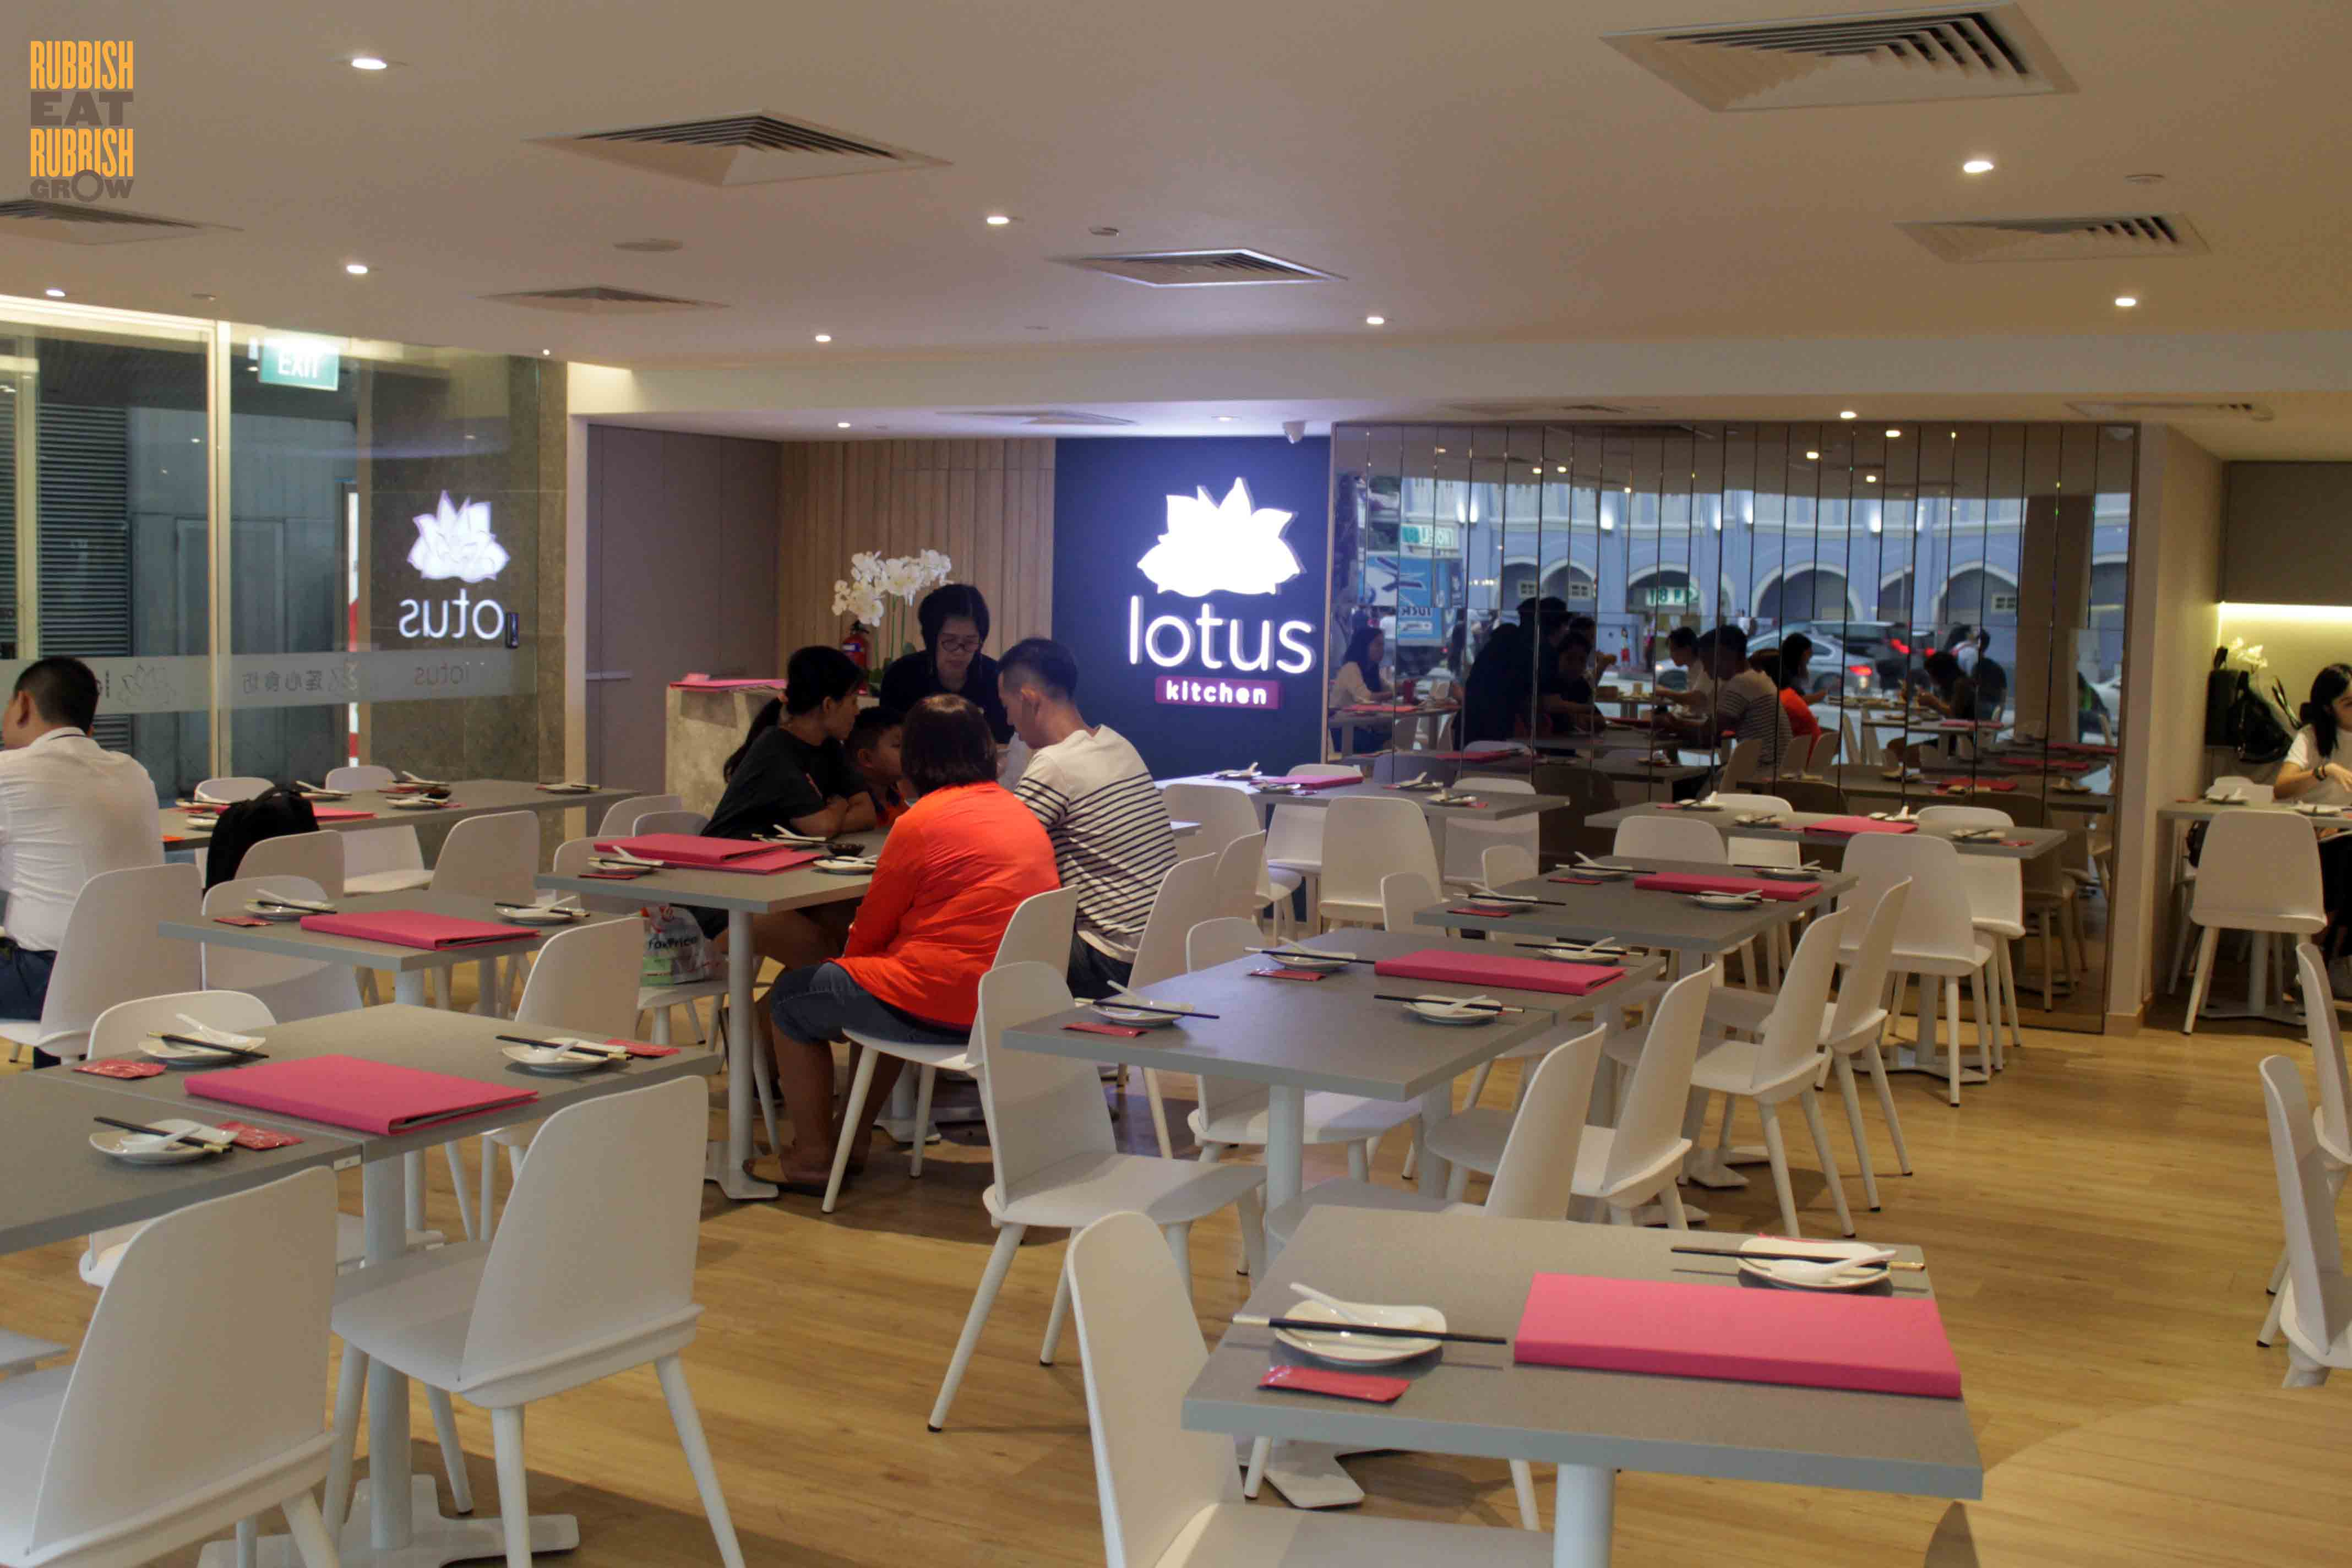 Merveilleux The New Lotus Kitchen At Chinatown Point Is An Outpost Of Lotus Vegetarian  Restaurant (Quality Hotel) And Is Under The Same Management As Greendot, ...